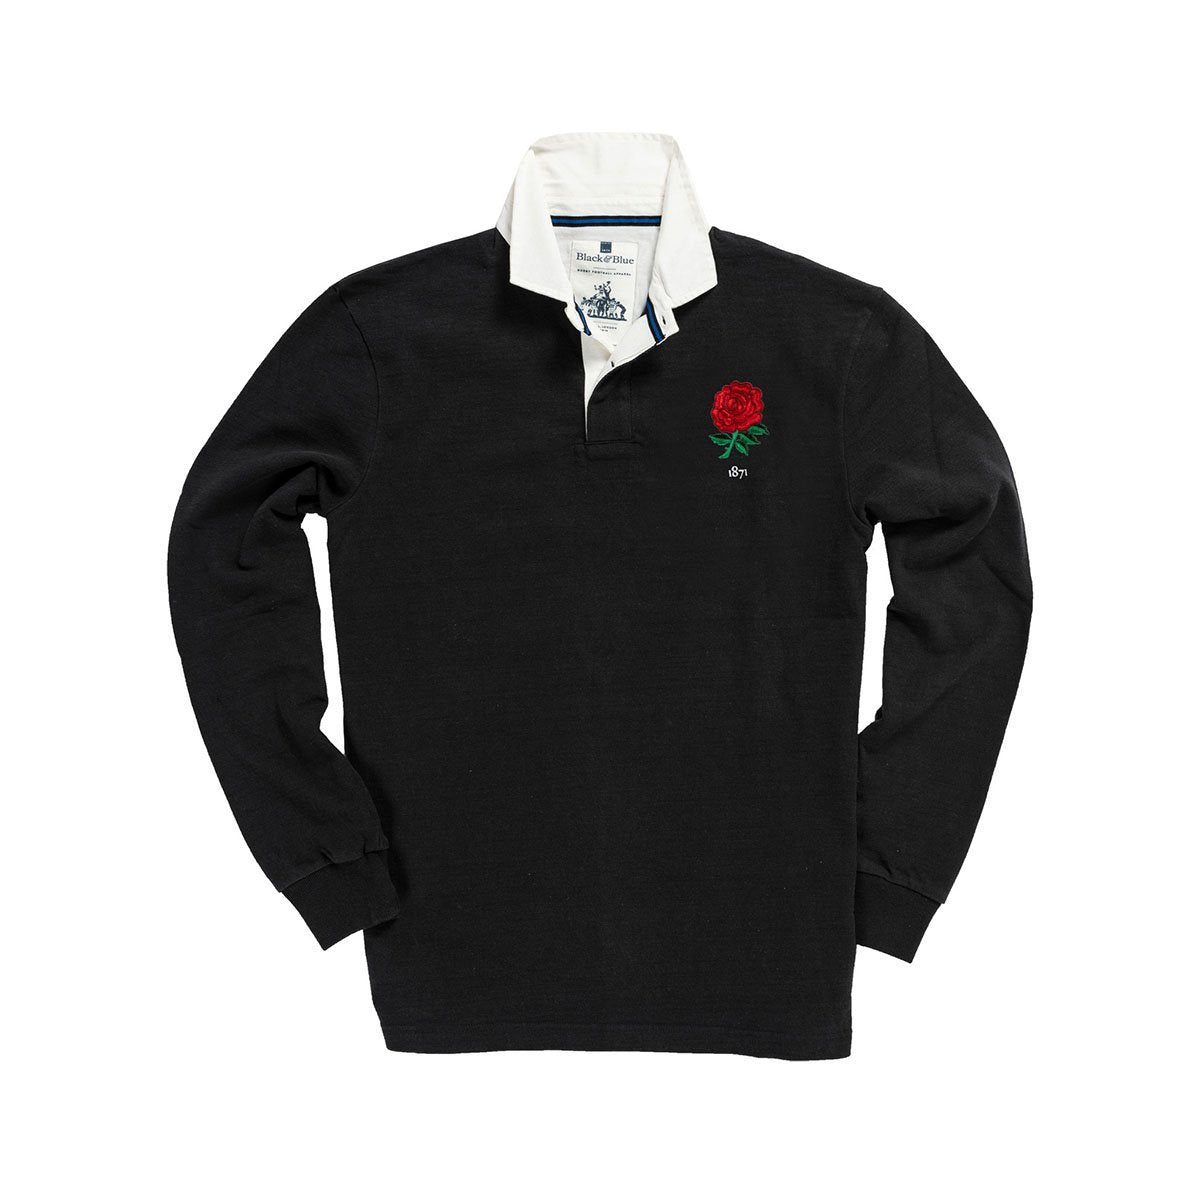 England 1871 Special Edition Rugby Shirt